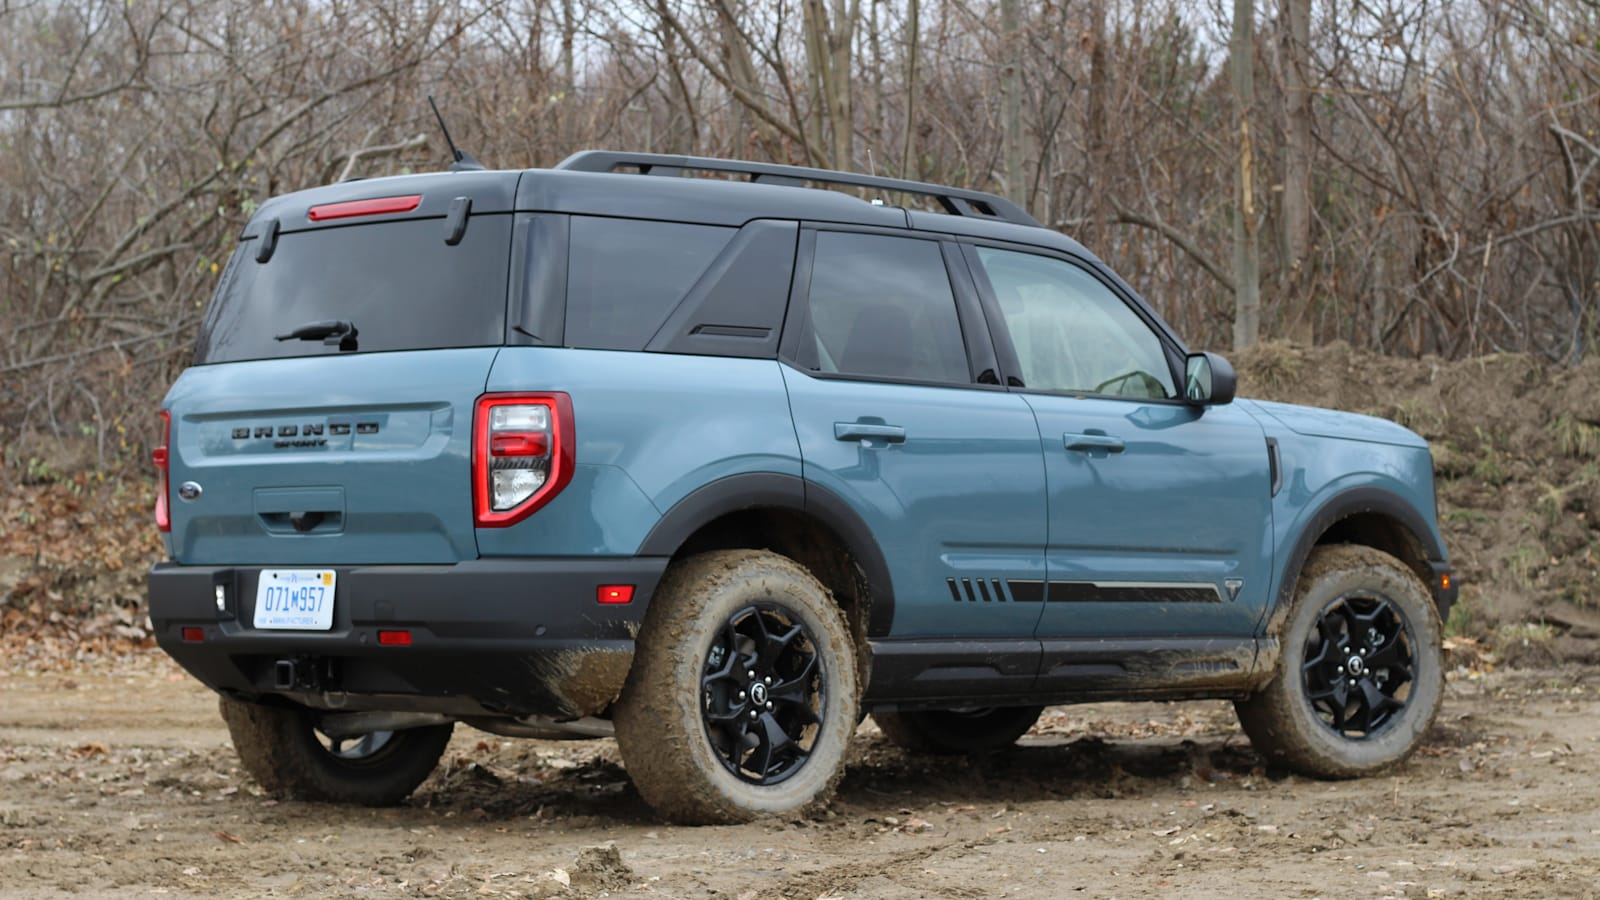 2021 ford bronco sport review | price, specs, features and